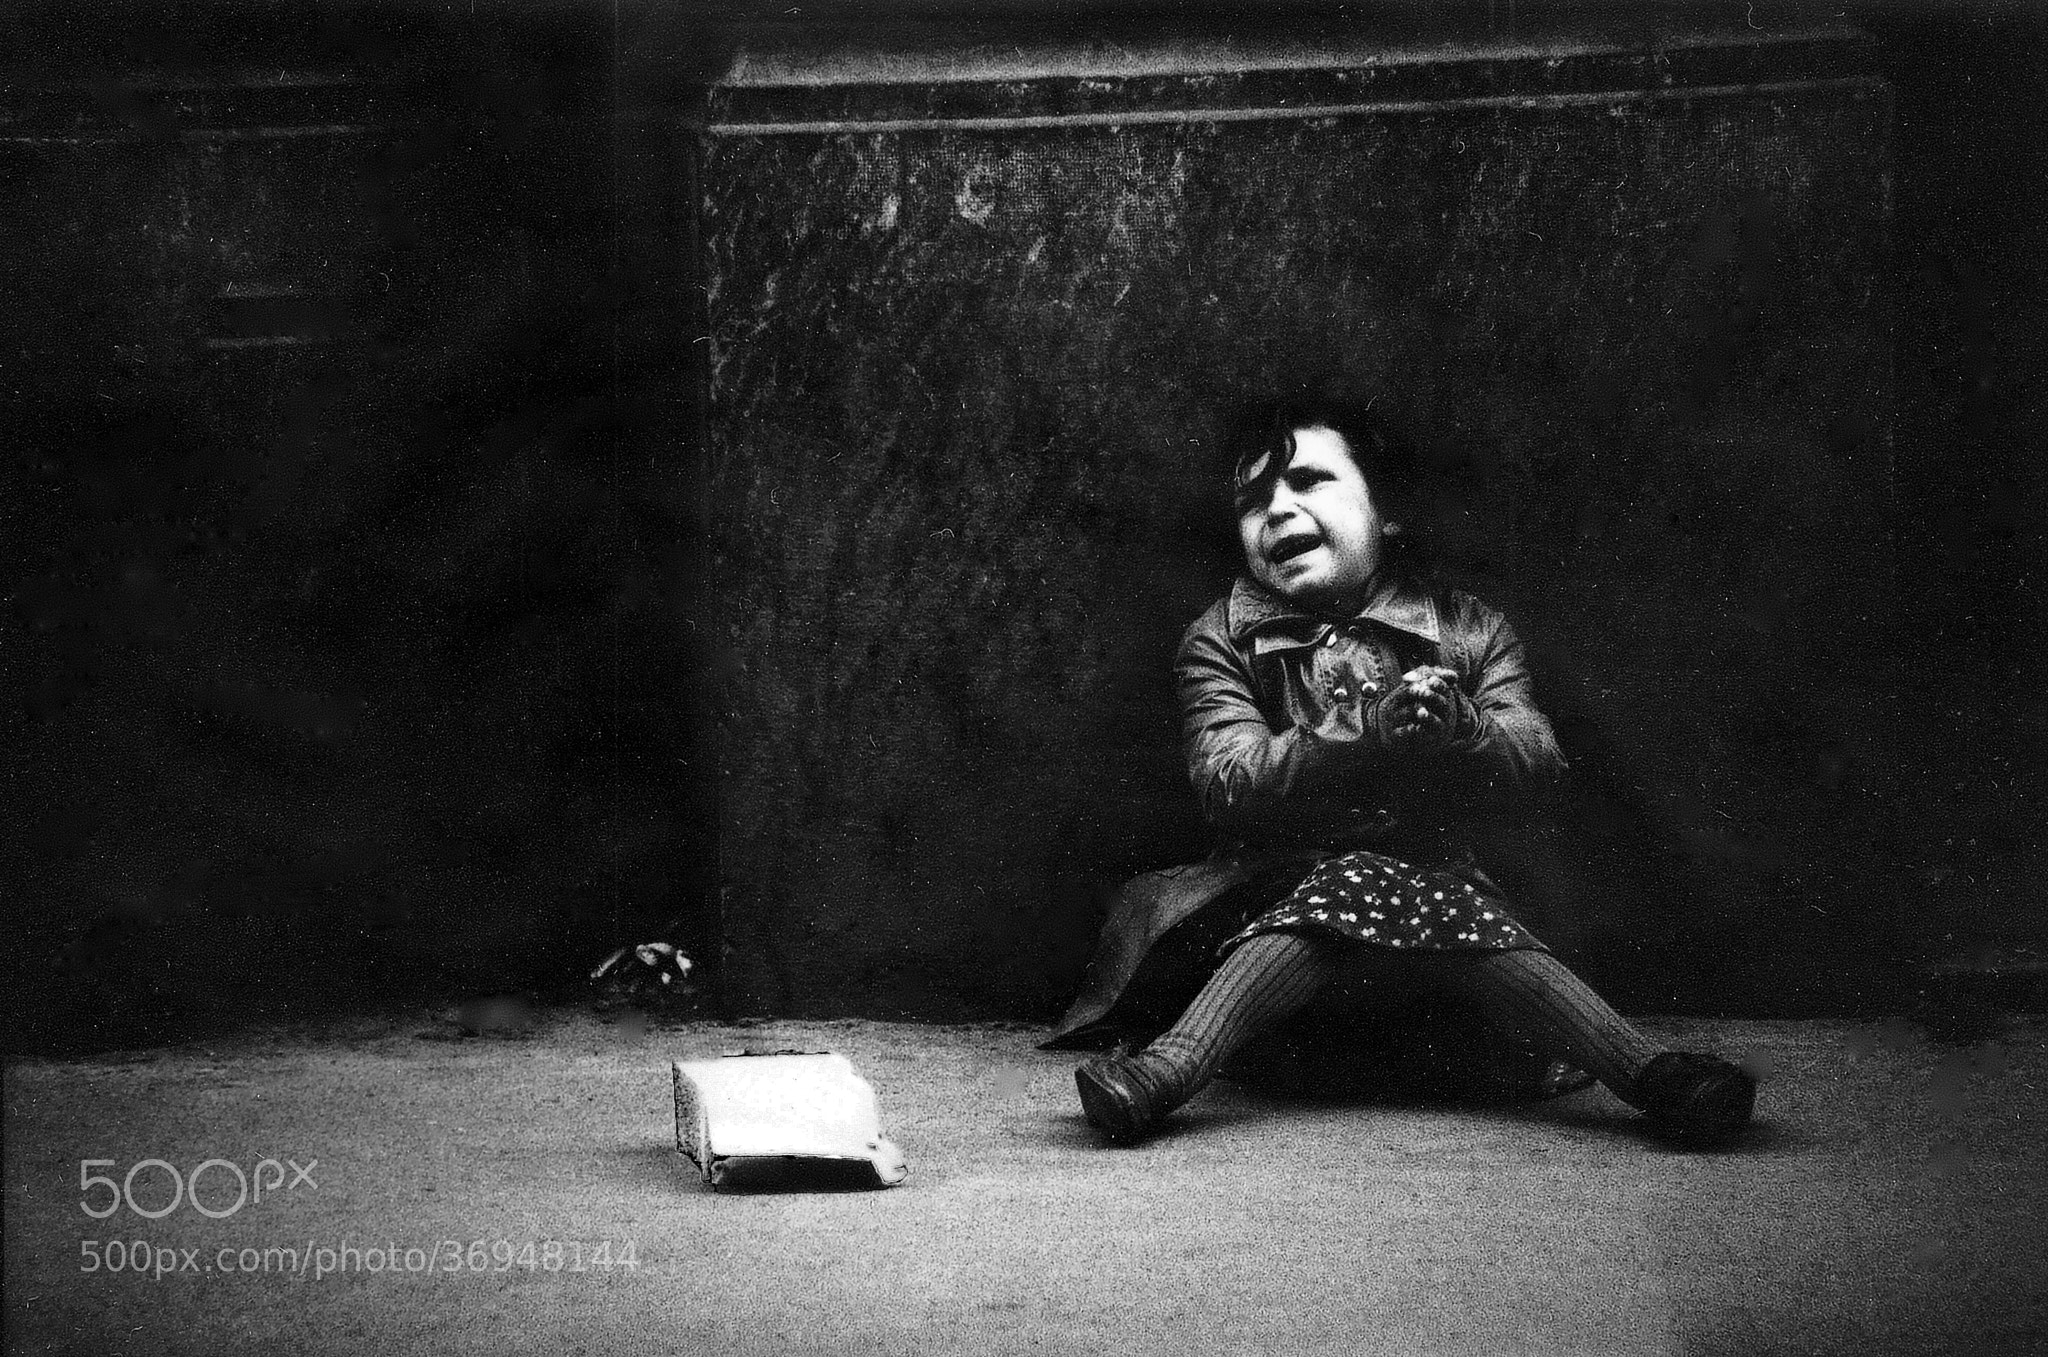 Photograph The Child by Darko Gereš on 500px